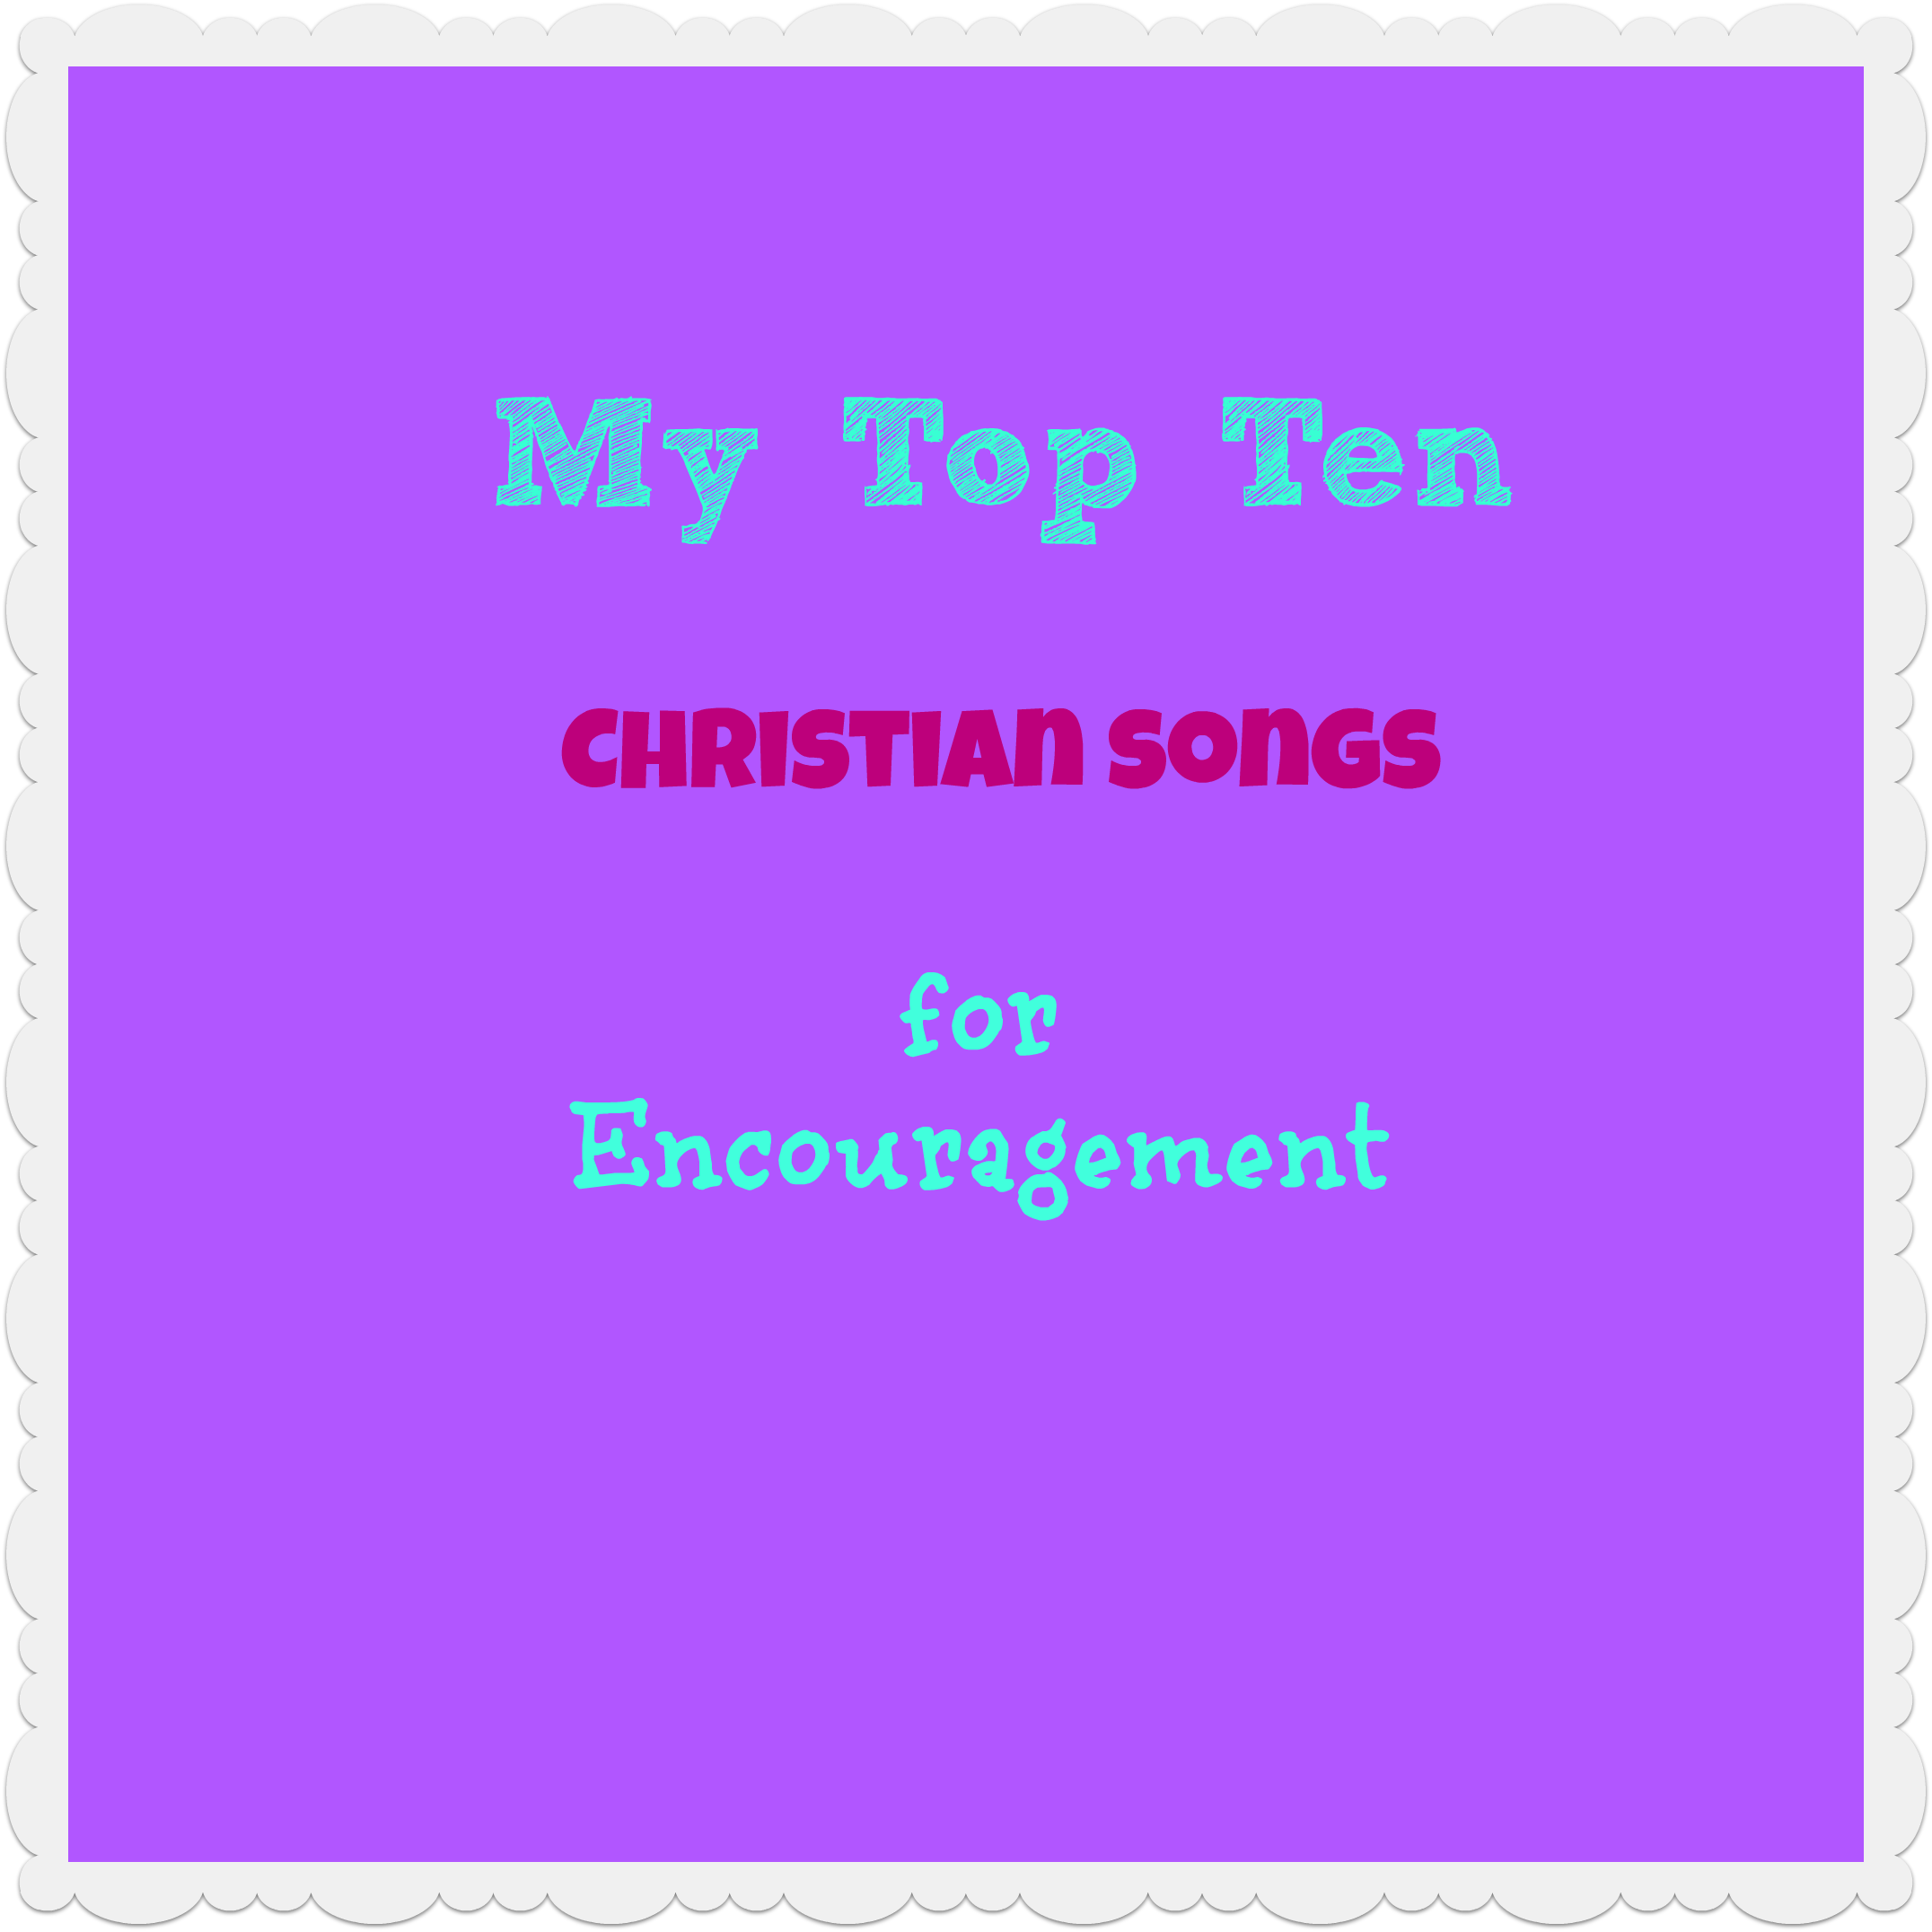 songs for encouragement